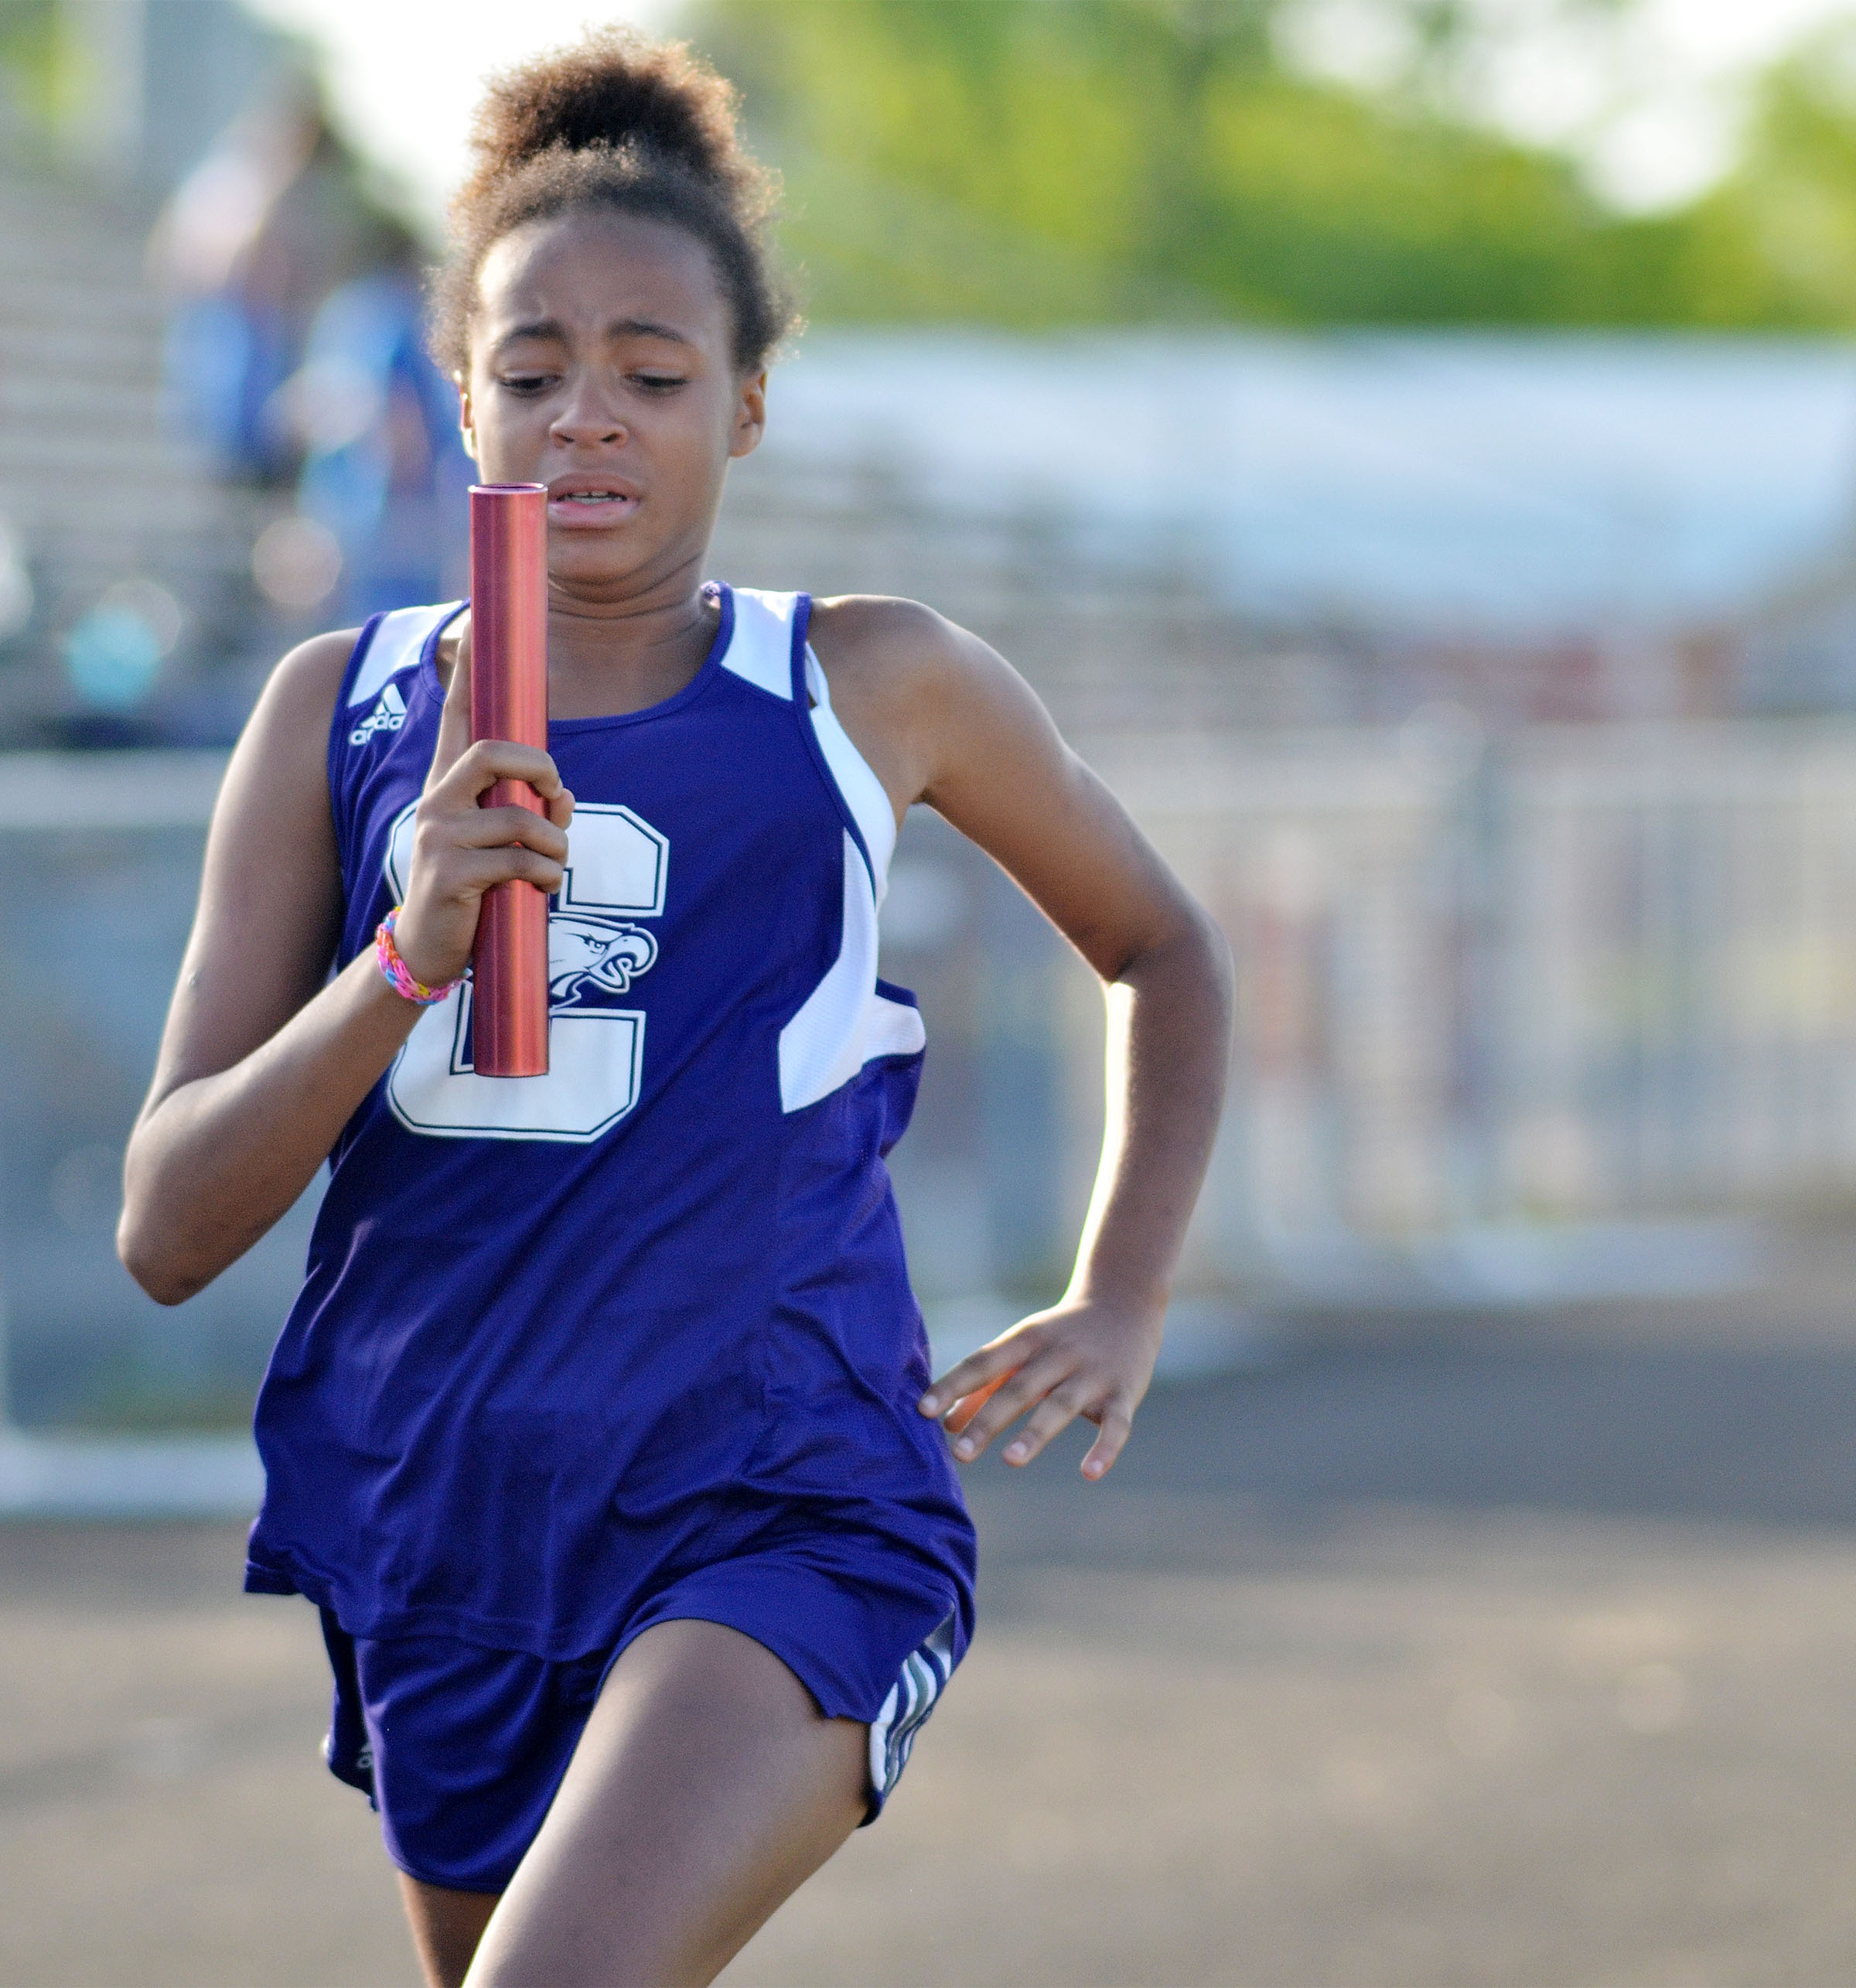 Campbellsville Middle School seventh-grader Aun Daya Coleman runs.